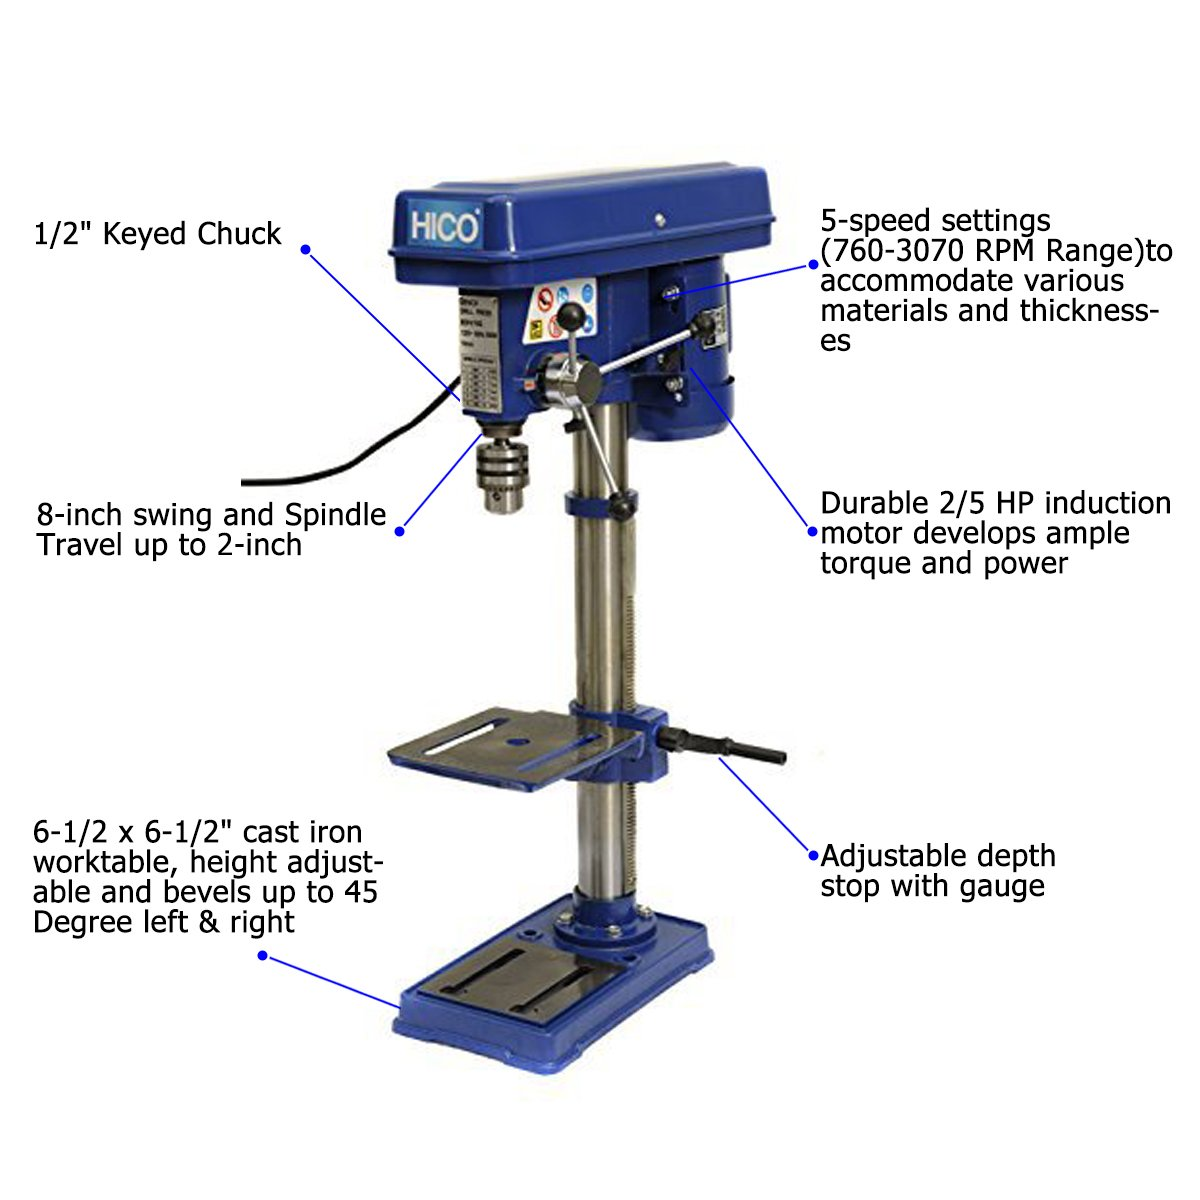 HICO-DP4113 8-Inch Bench Top Drill Press 5 Speed Rotary Tool Work Station with 6-1/2 x 6-1/2 inch cast iron worktable, height adjustable